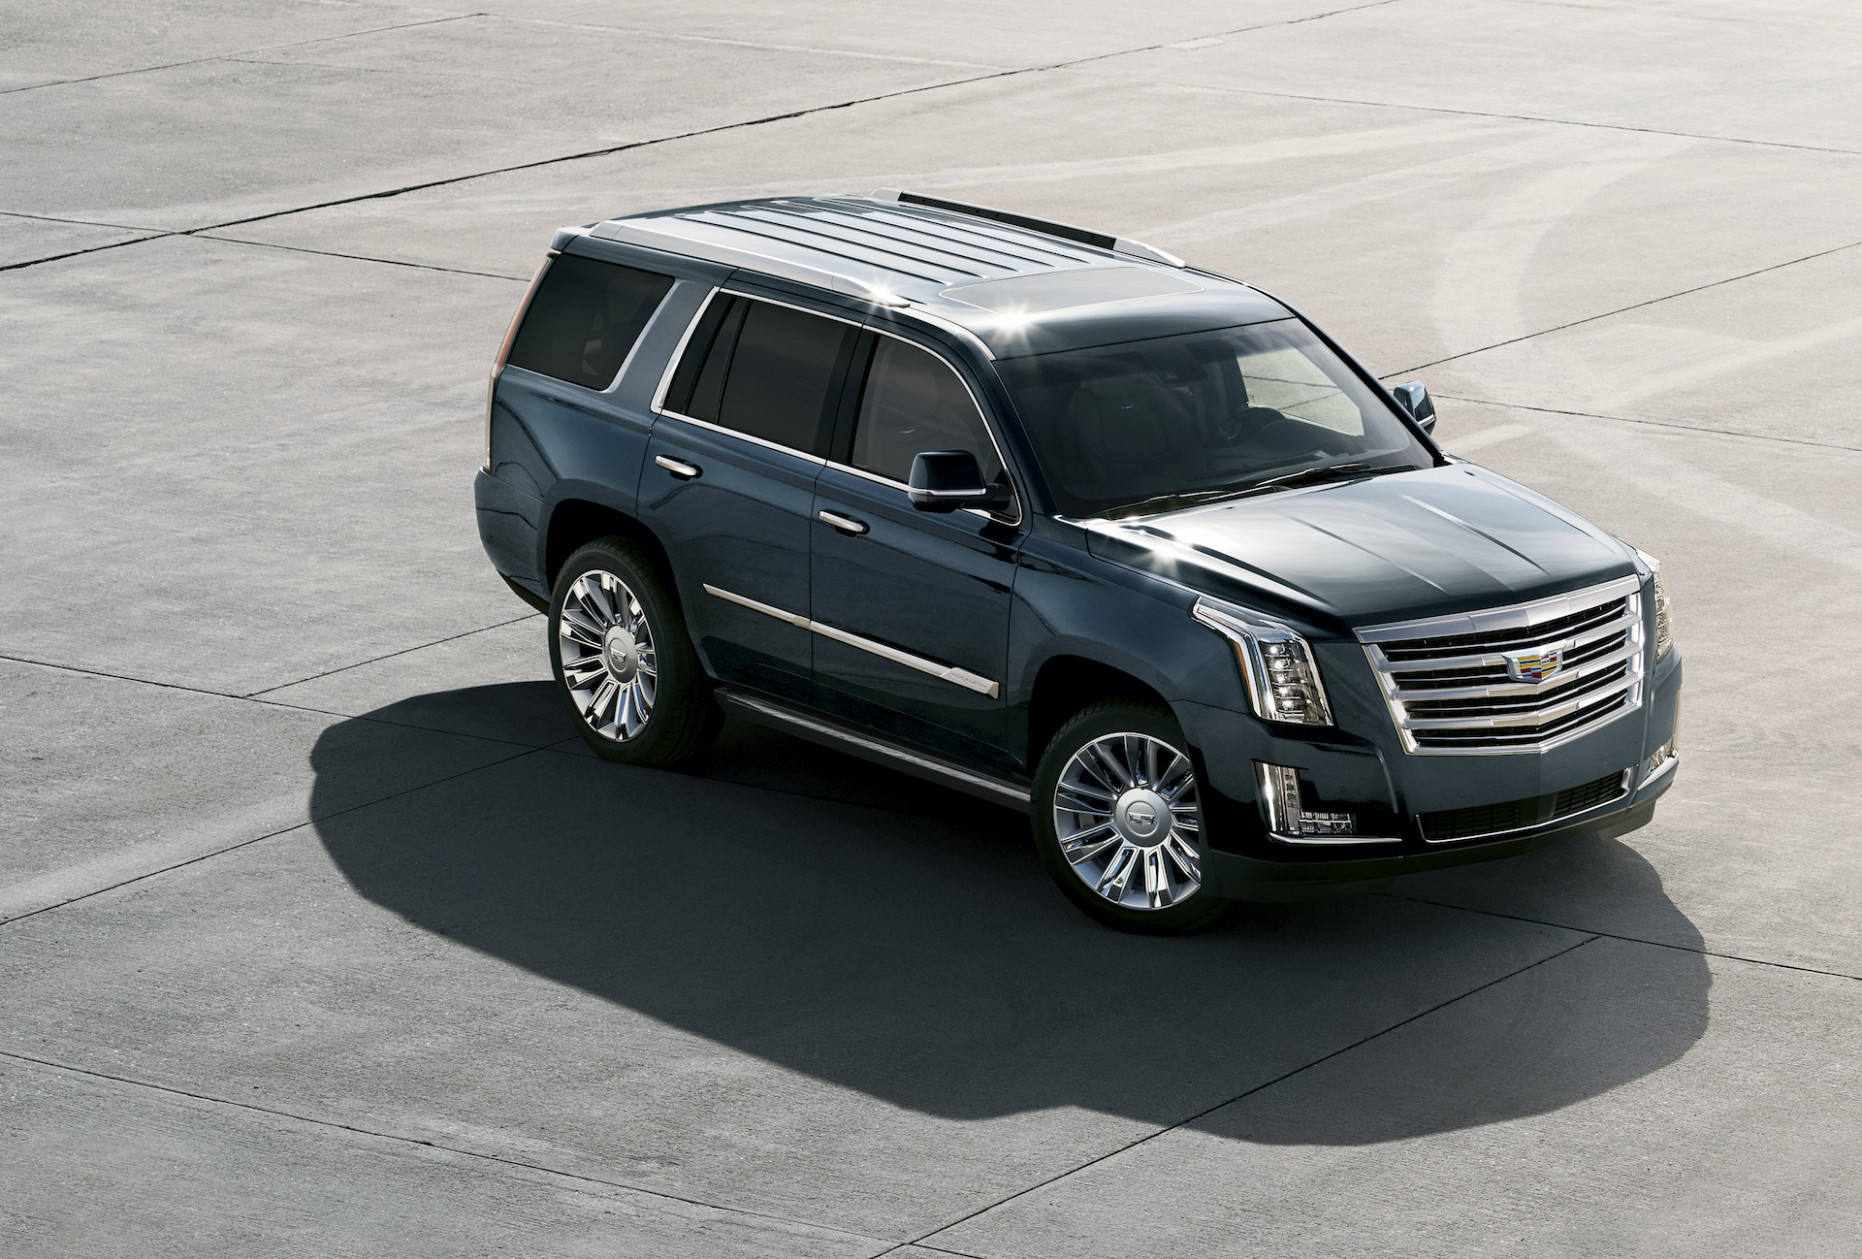 11 Cadillac Escalade Review, Ratings, Specs, Prices, and Photos ...